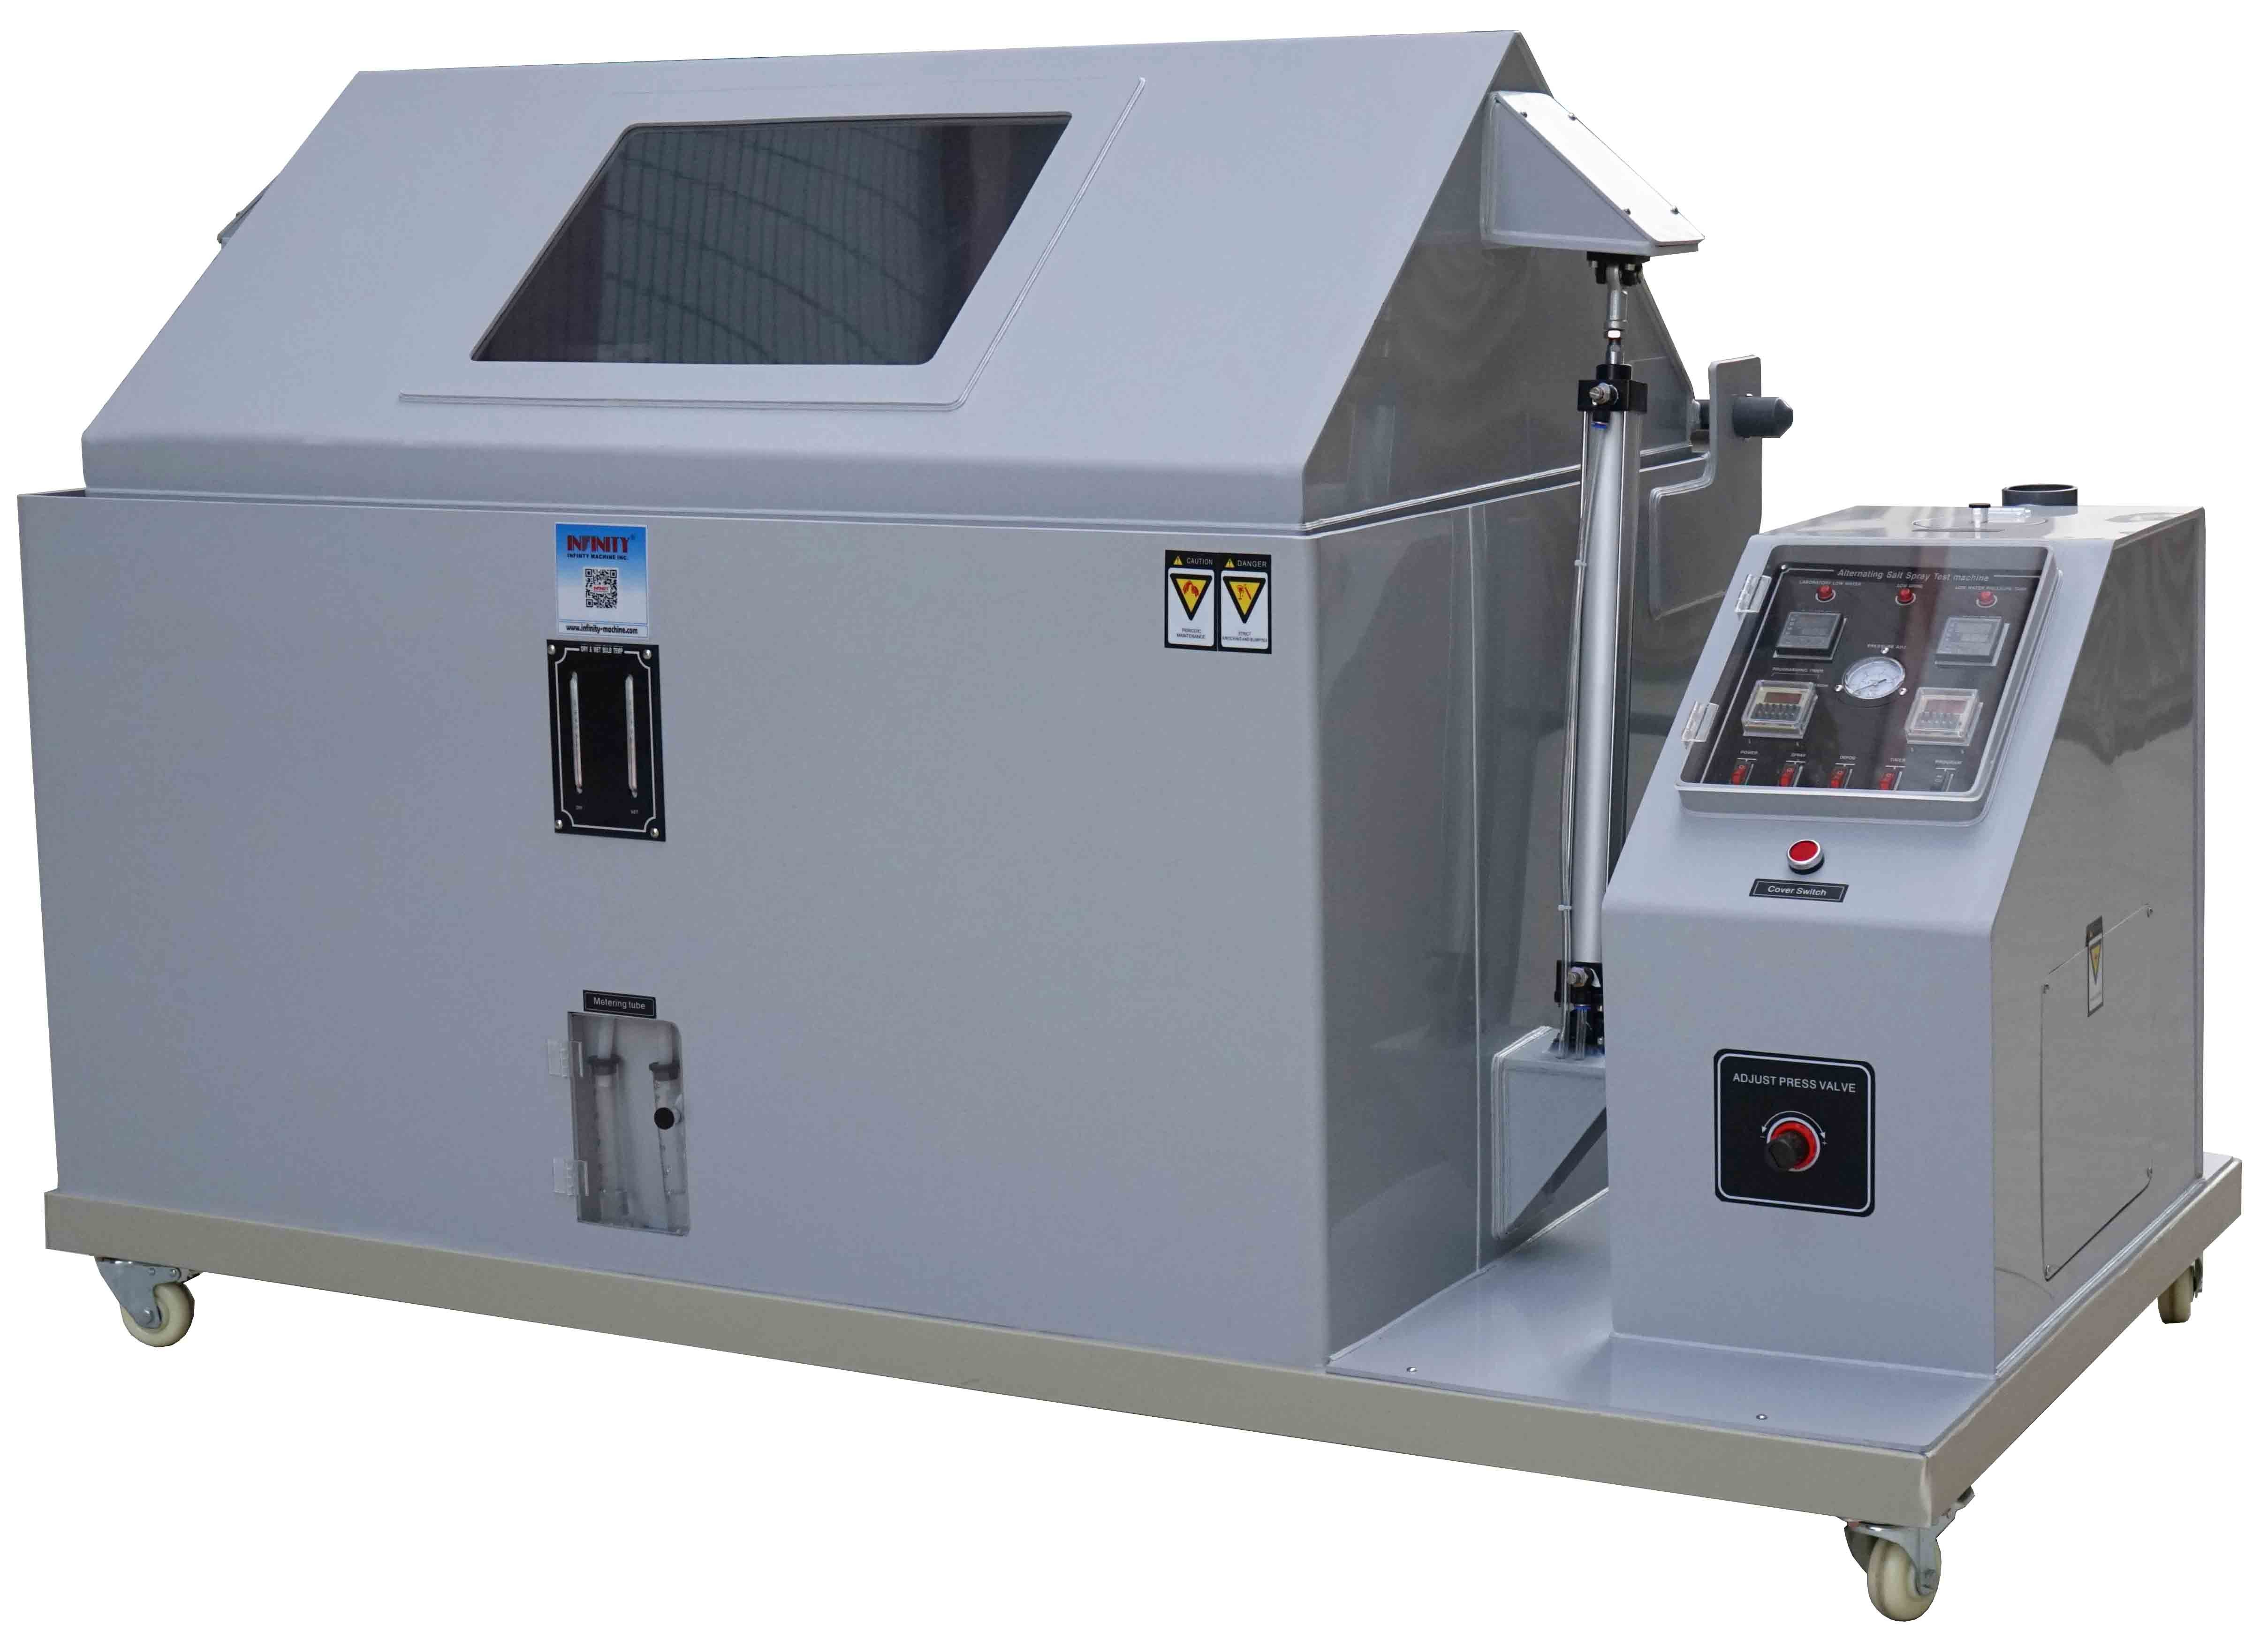 Digital Thermal Environmental Salt Fog Test Chamber ASTM-B117 Standard